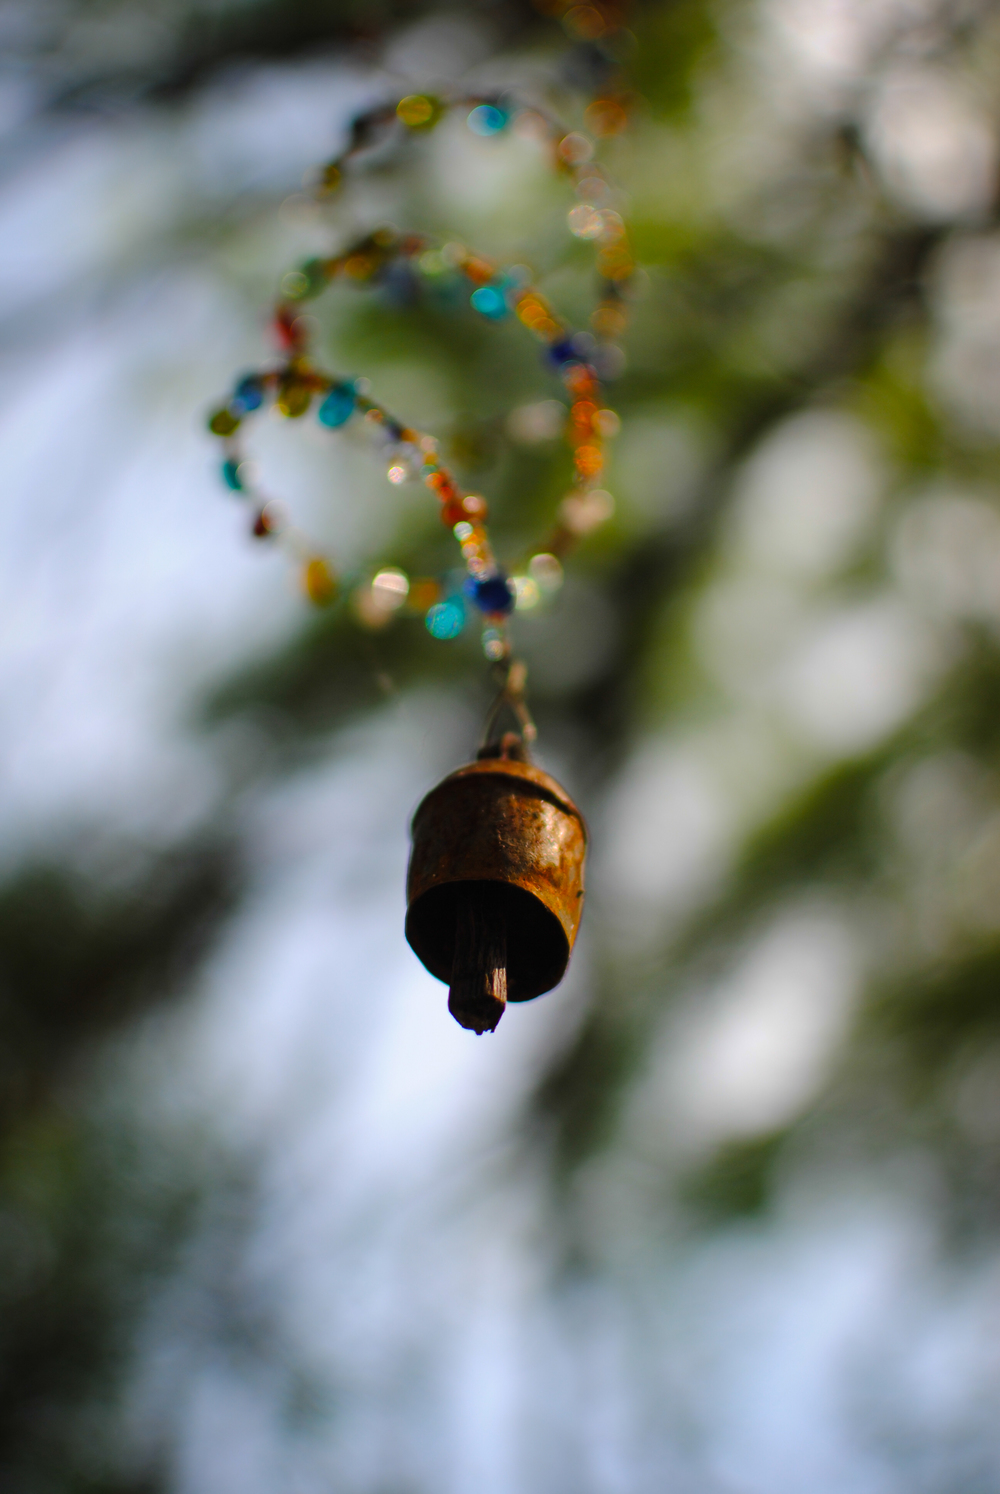 Spiral wind chime hangs quietly in the tree. .